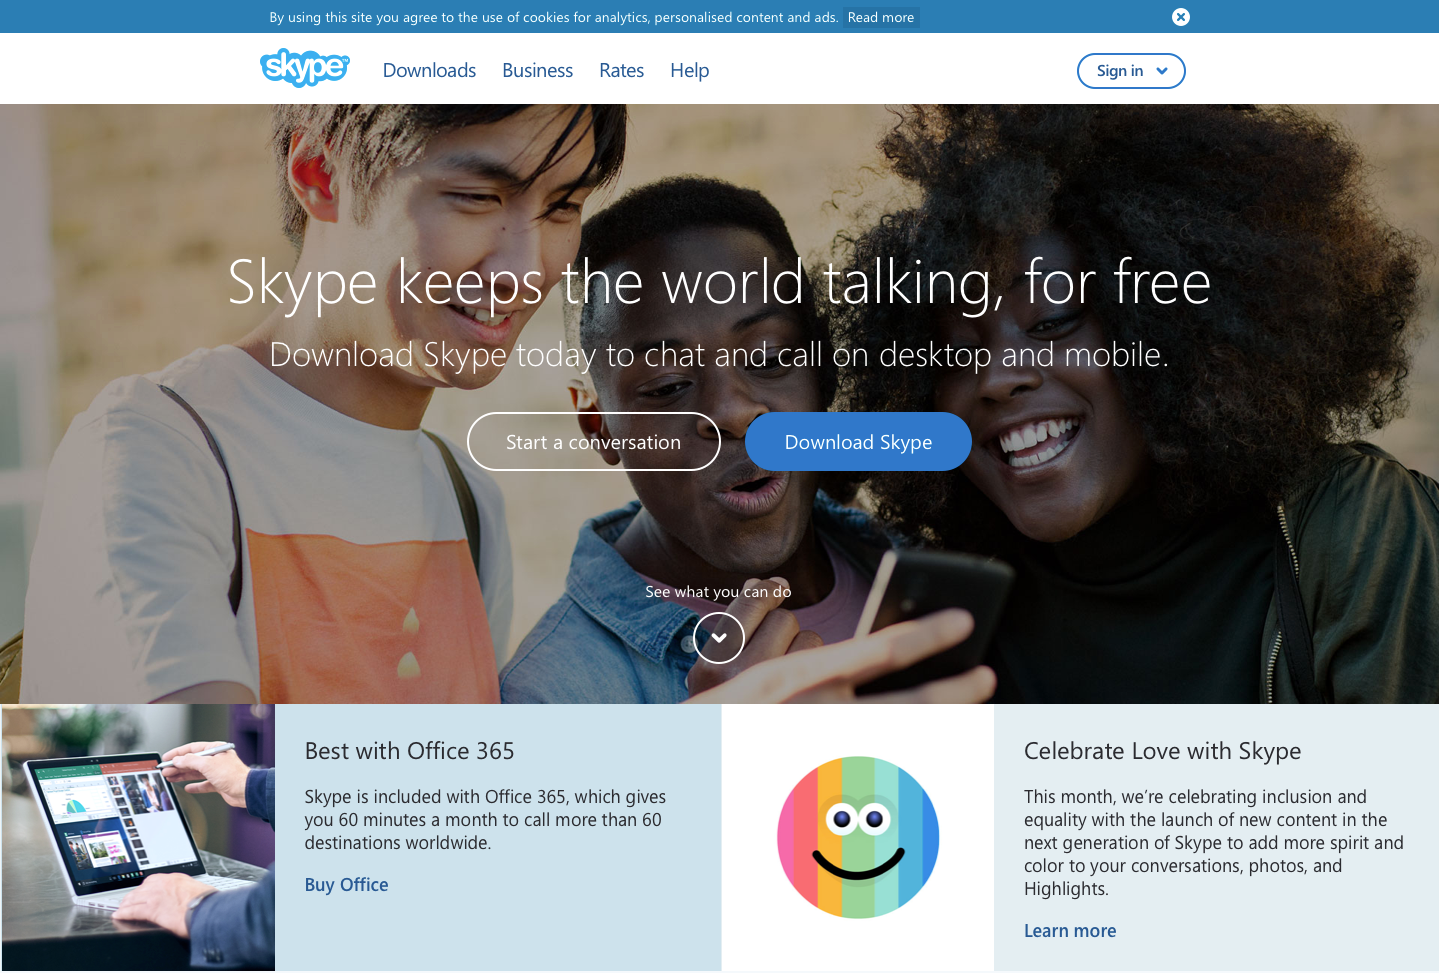 Landing Page Examples from Top Tech Companies | Skype Application